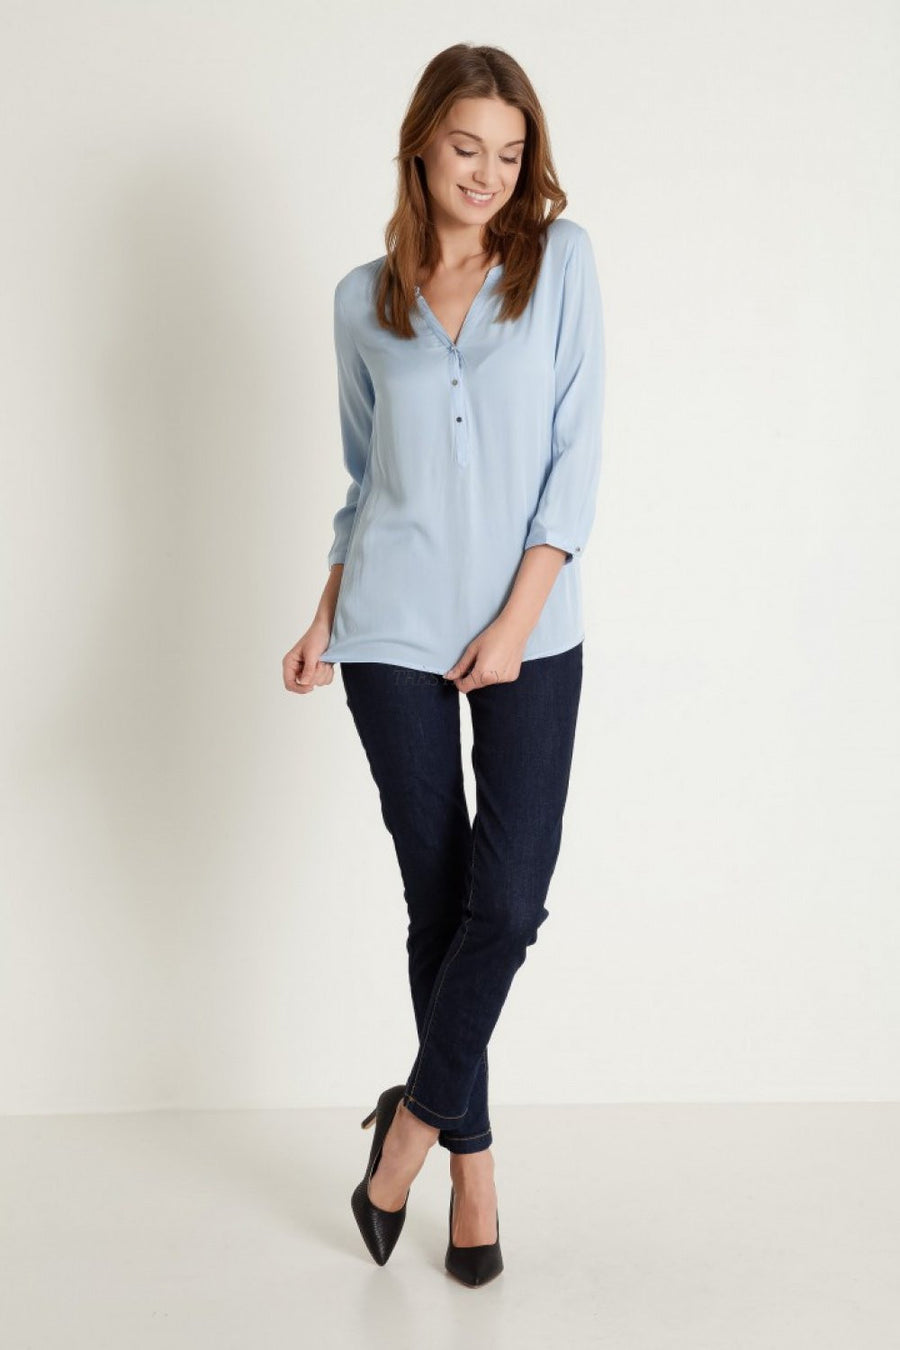 Blouse 77921 Greenpoint-Women`s Blouses & Tunics-Greenpoint-blue-36-TRESFANCY